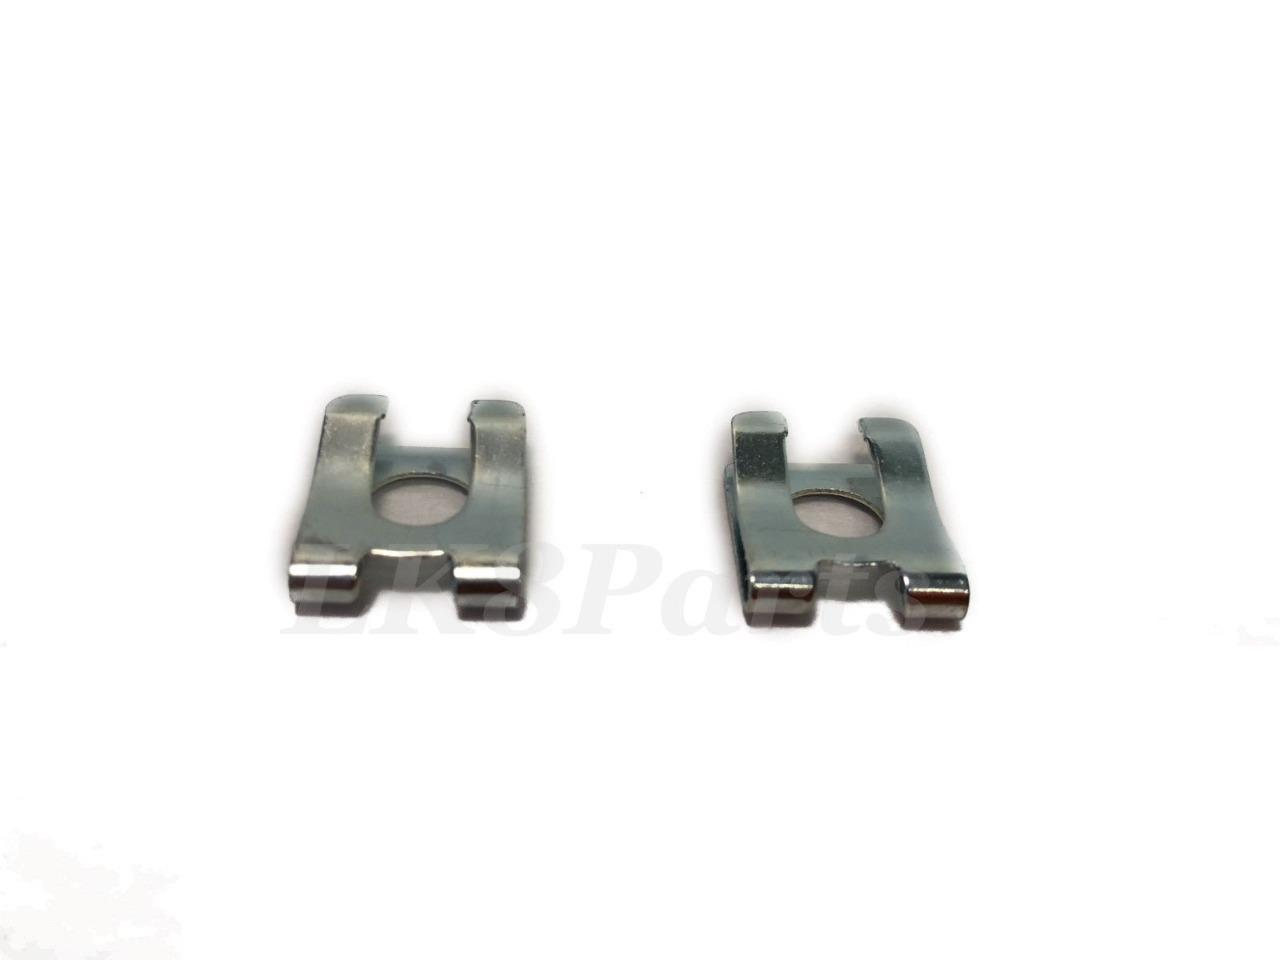 RANGE ROVER P38 FRONT AIR SPRING STEEL CLIPS Set of 4 GENUINE LAND ROVER NTC9449